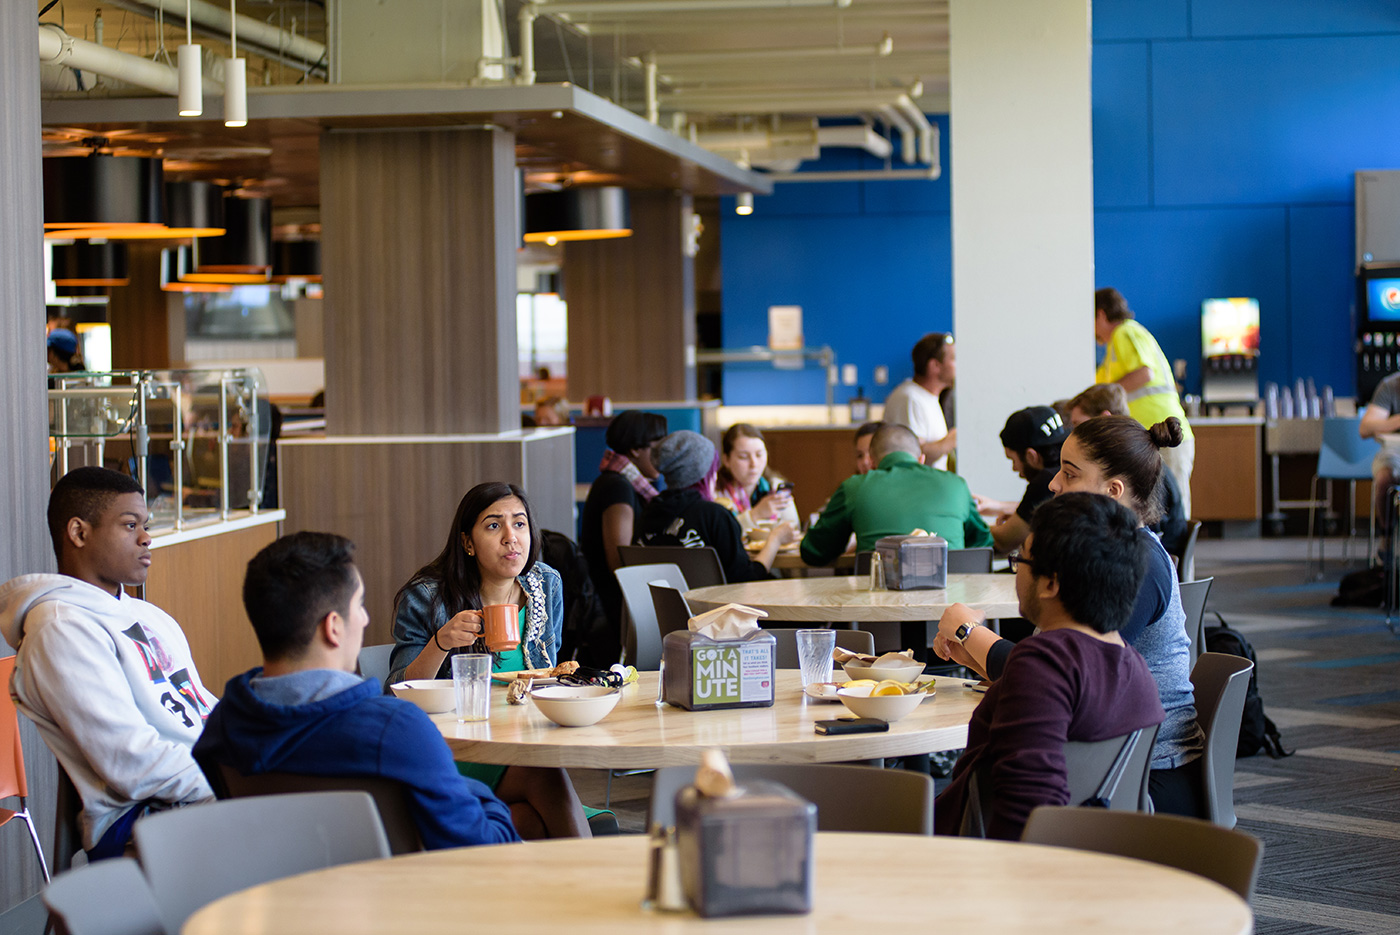 Students eating and talking around a table at the South Campus Dining Commons in the McGauvran Center.